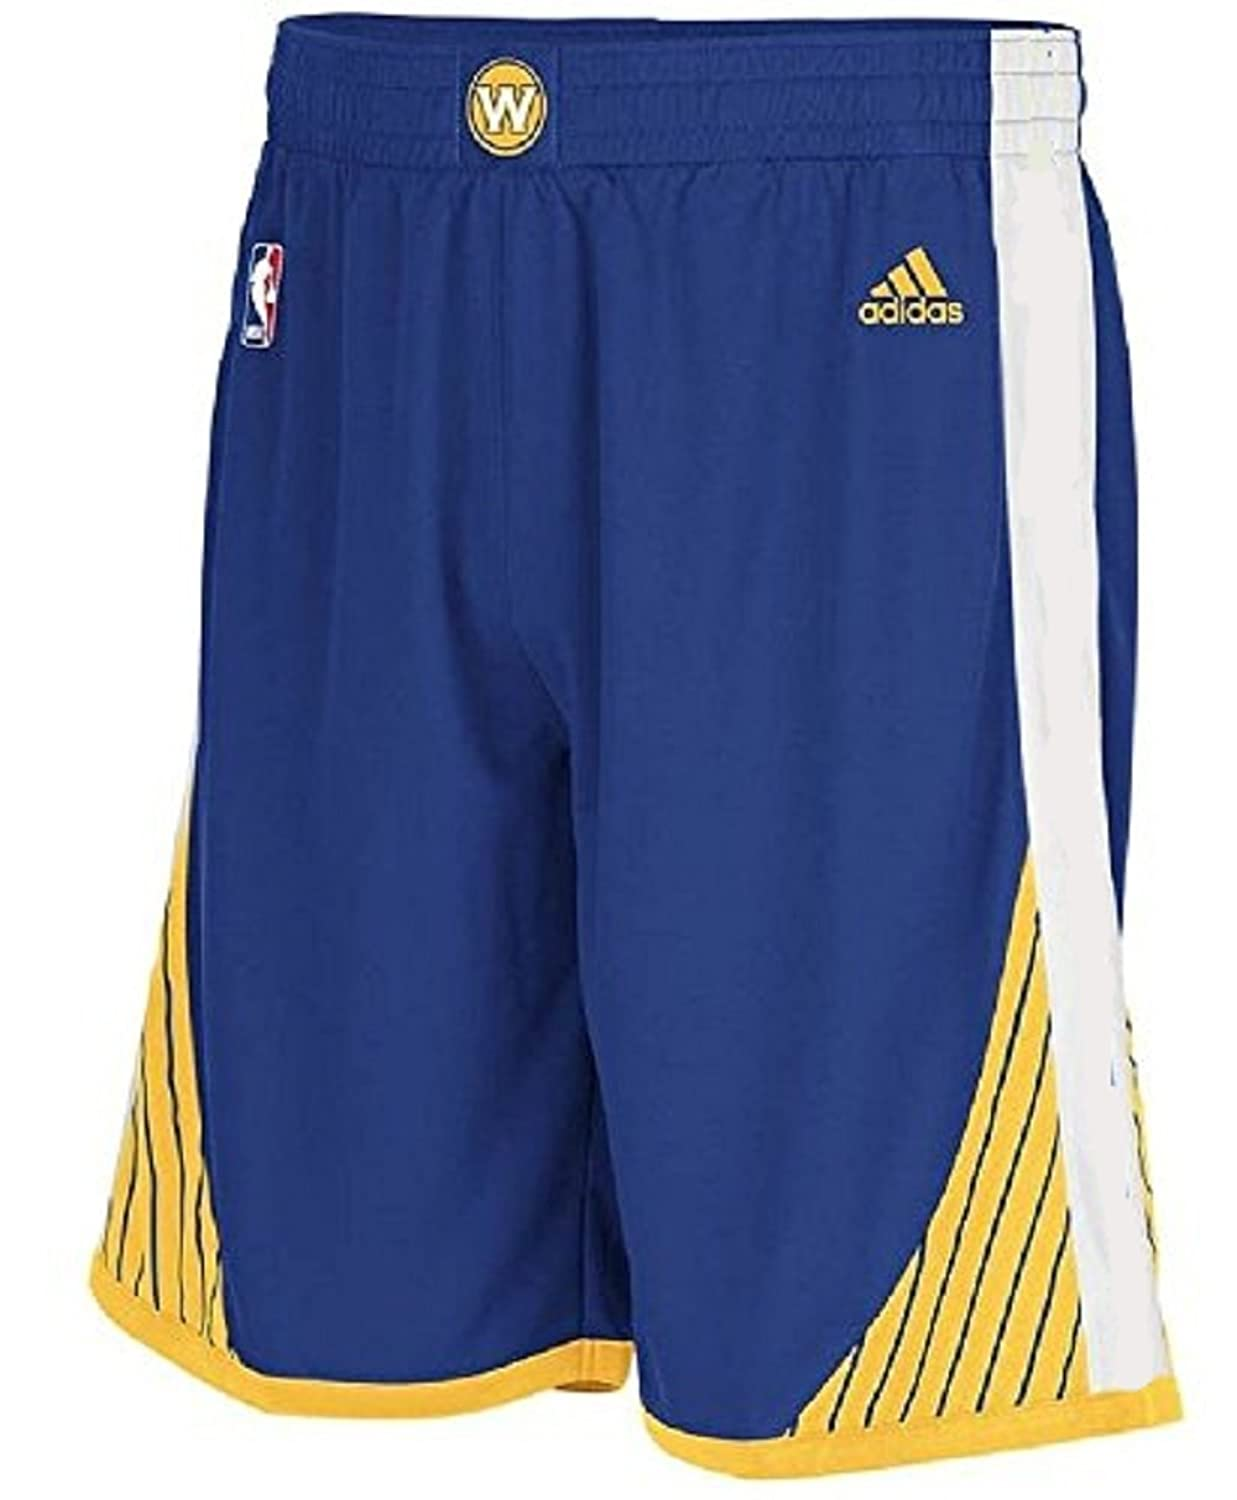 adidas NBA Golden State Warriors Youth Replica New Style Shorts - Blue Boys 8-20 free shipping